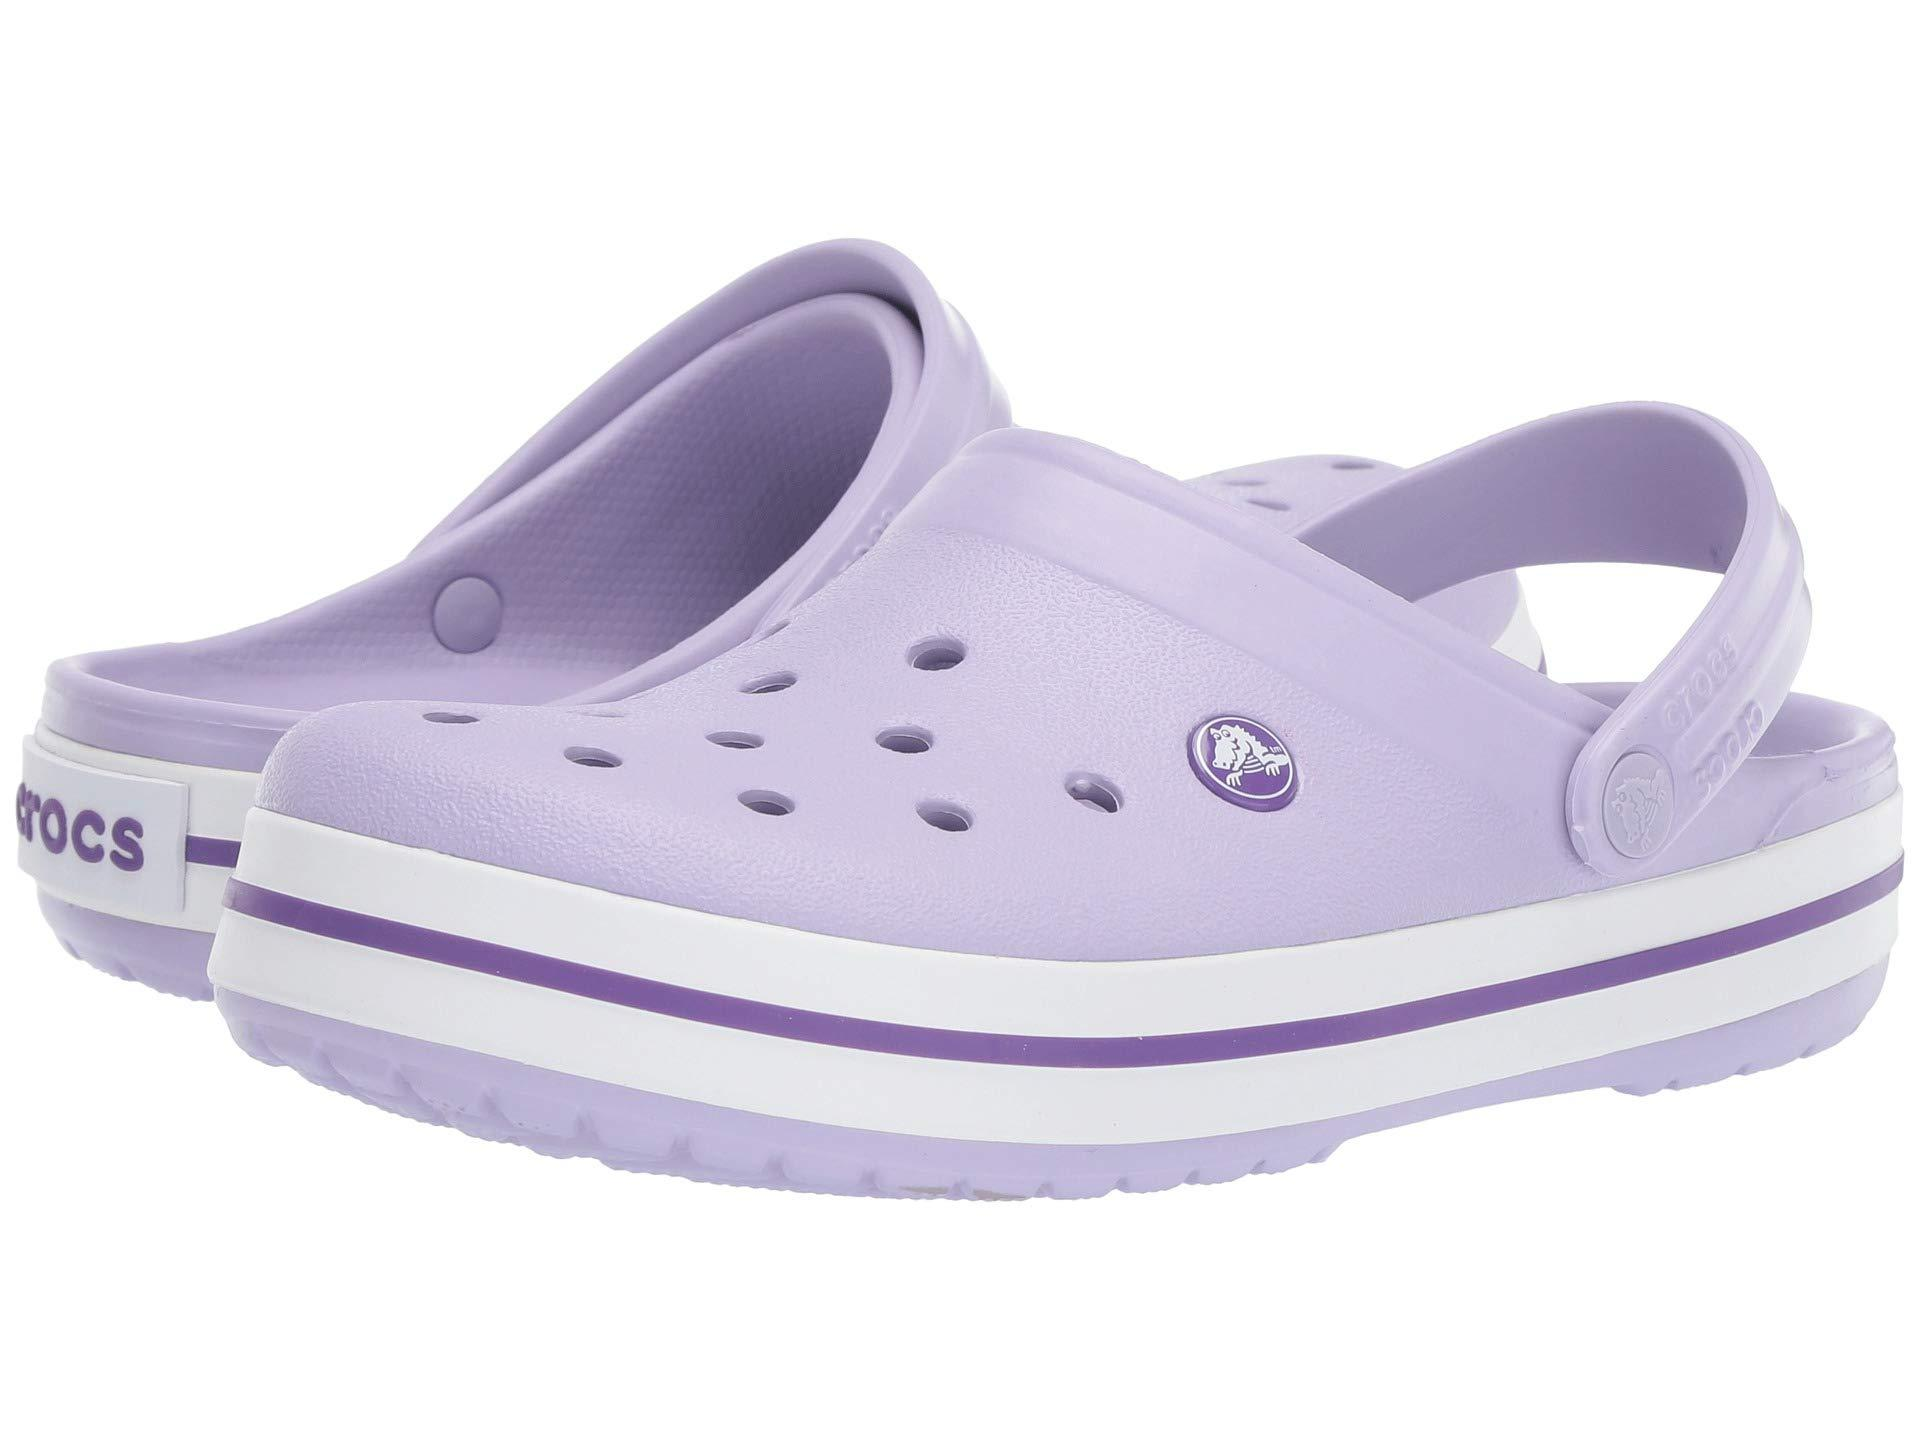 41afd209f Lyst - Crocs™ Unisex Adults  Crocband U Clogs in Purple